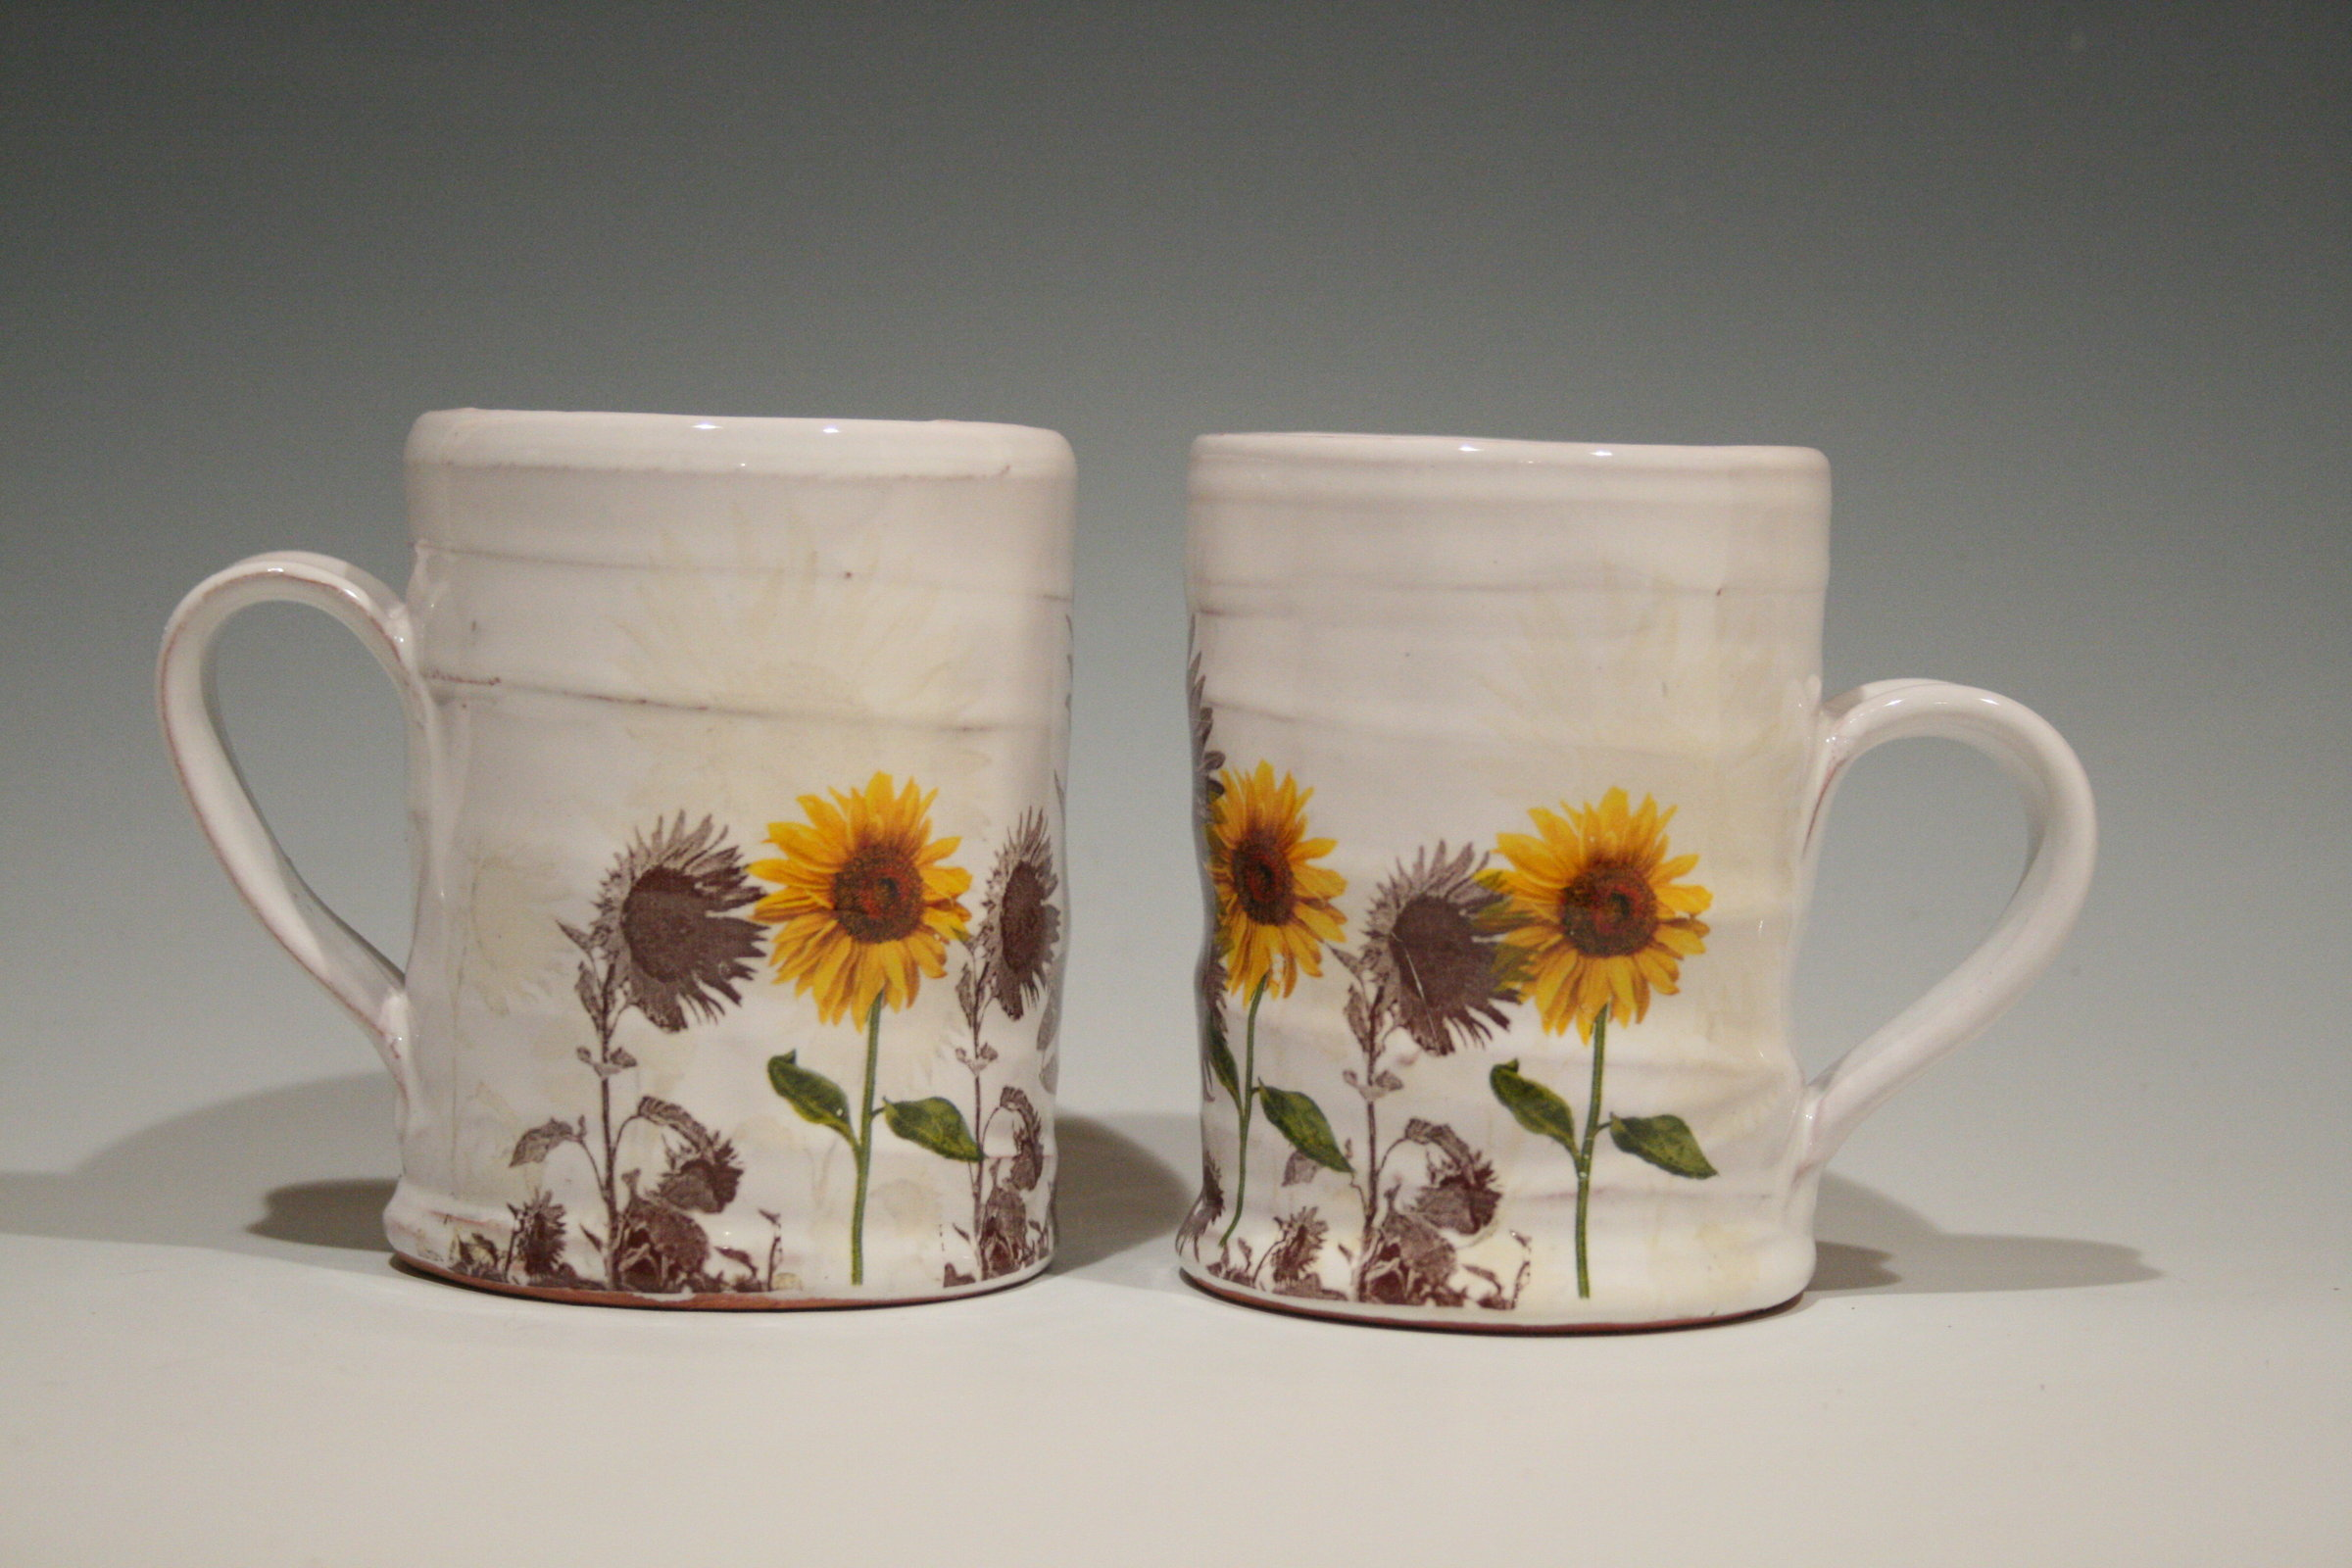 Artful Home Sunflower Mug By Justin Rothshank Ceramic Mug Artful Home